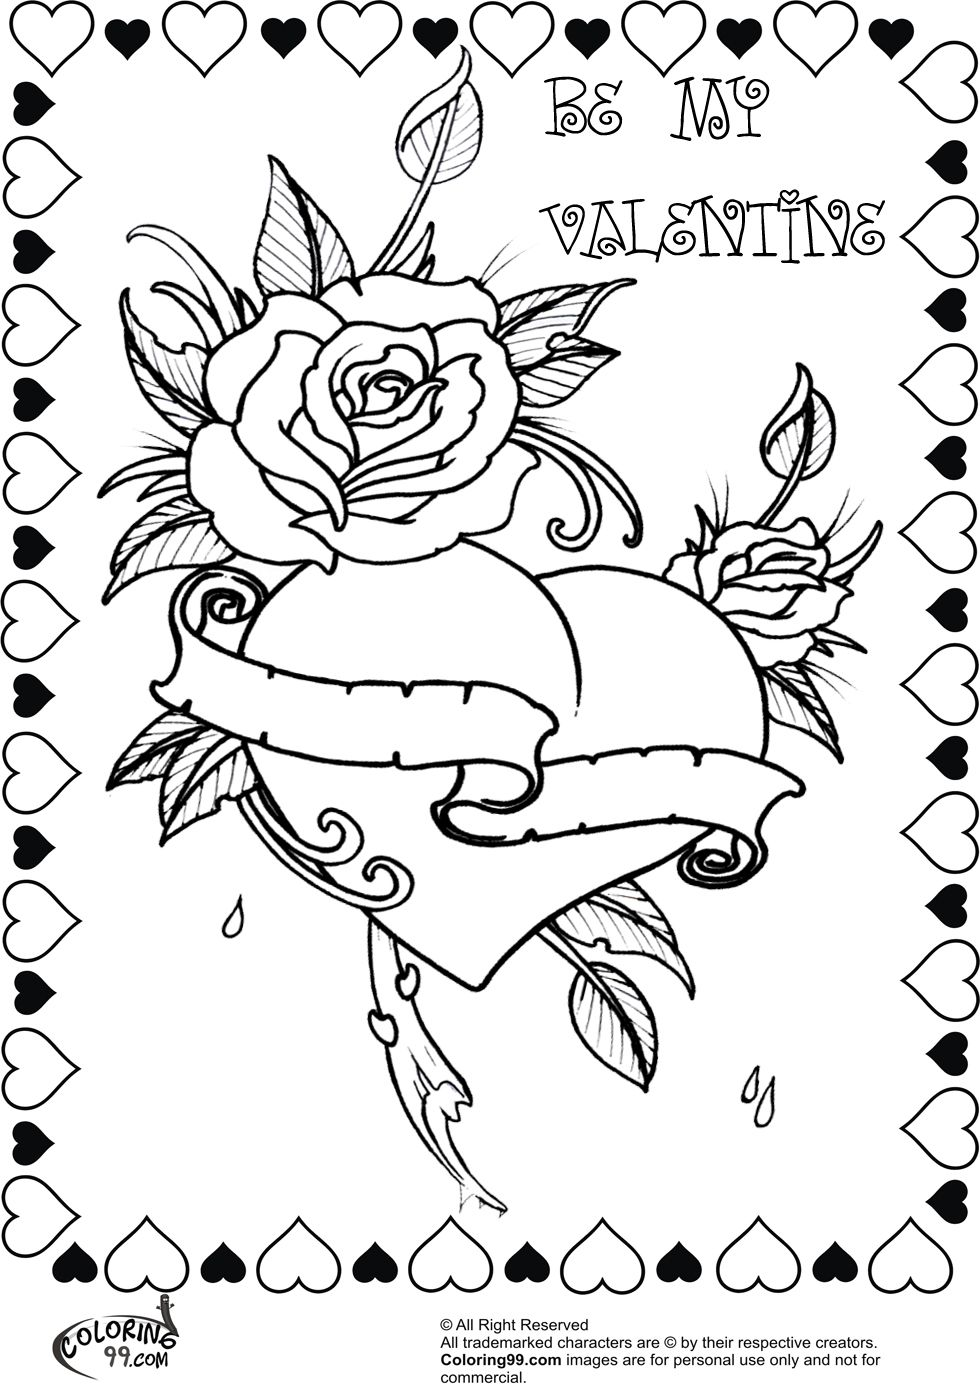 Coloring pages for adults valentines day - Bbeautiful Rose Heart Valentine Coloring Pages For Adults Free Download